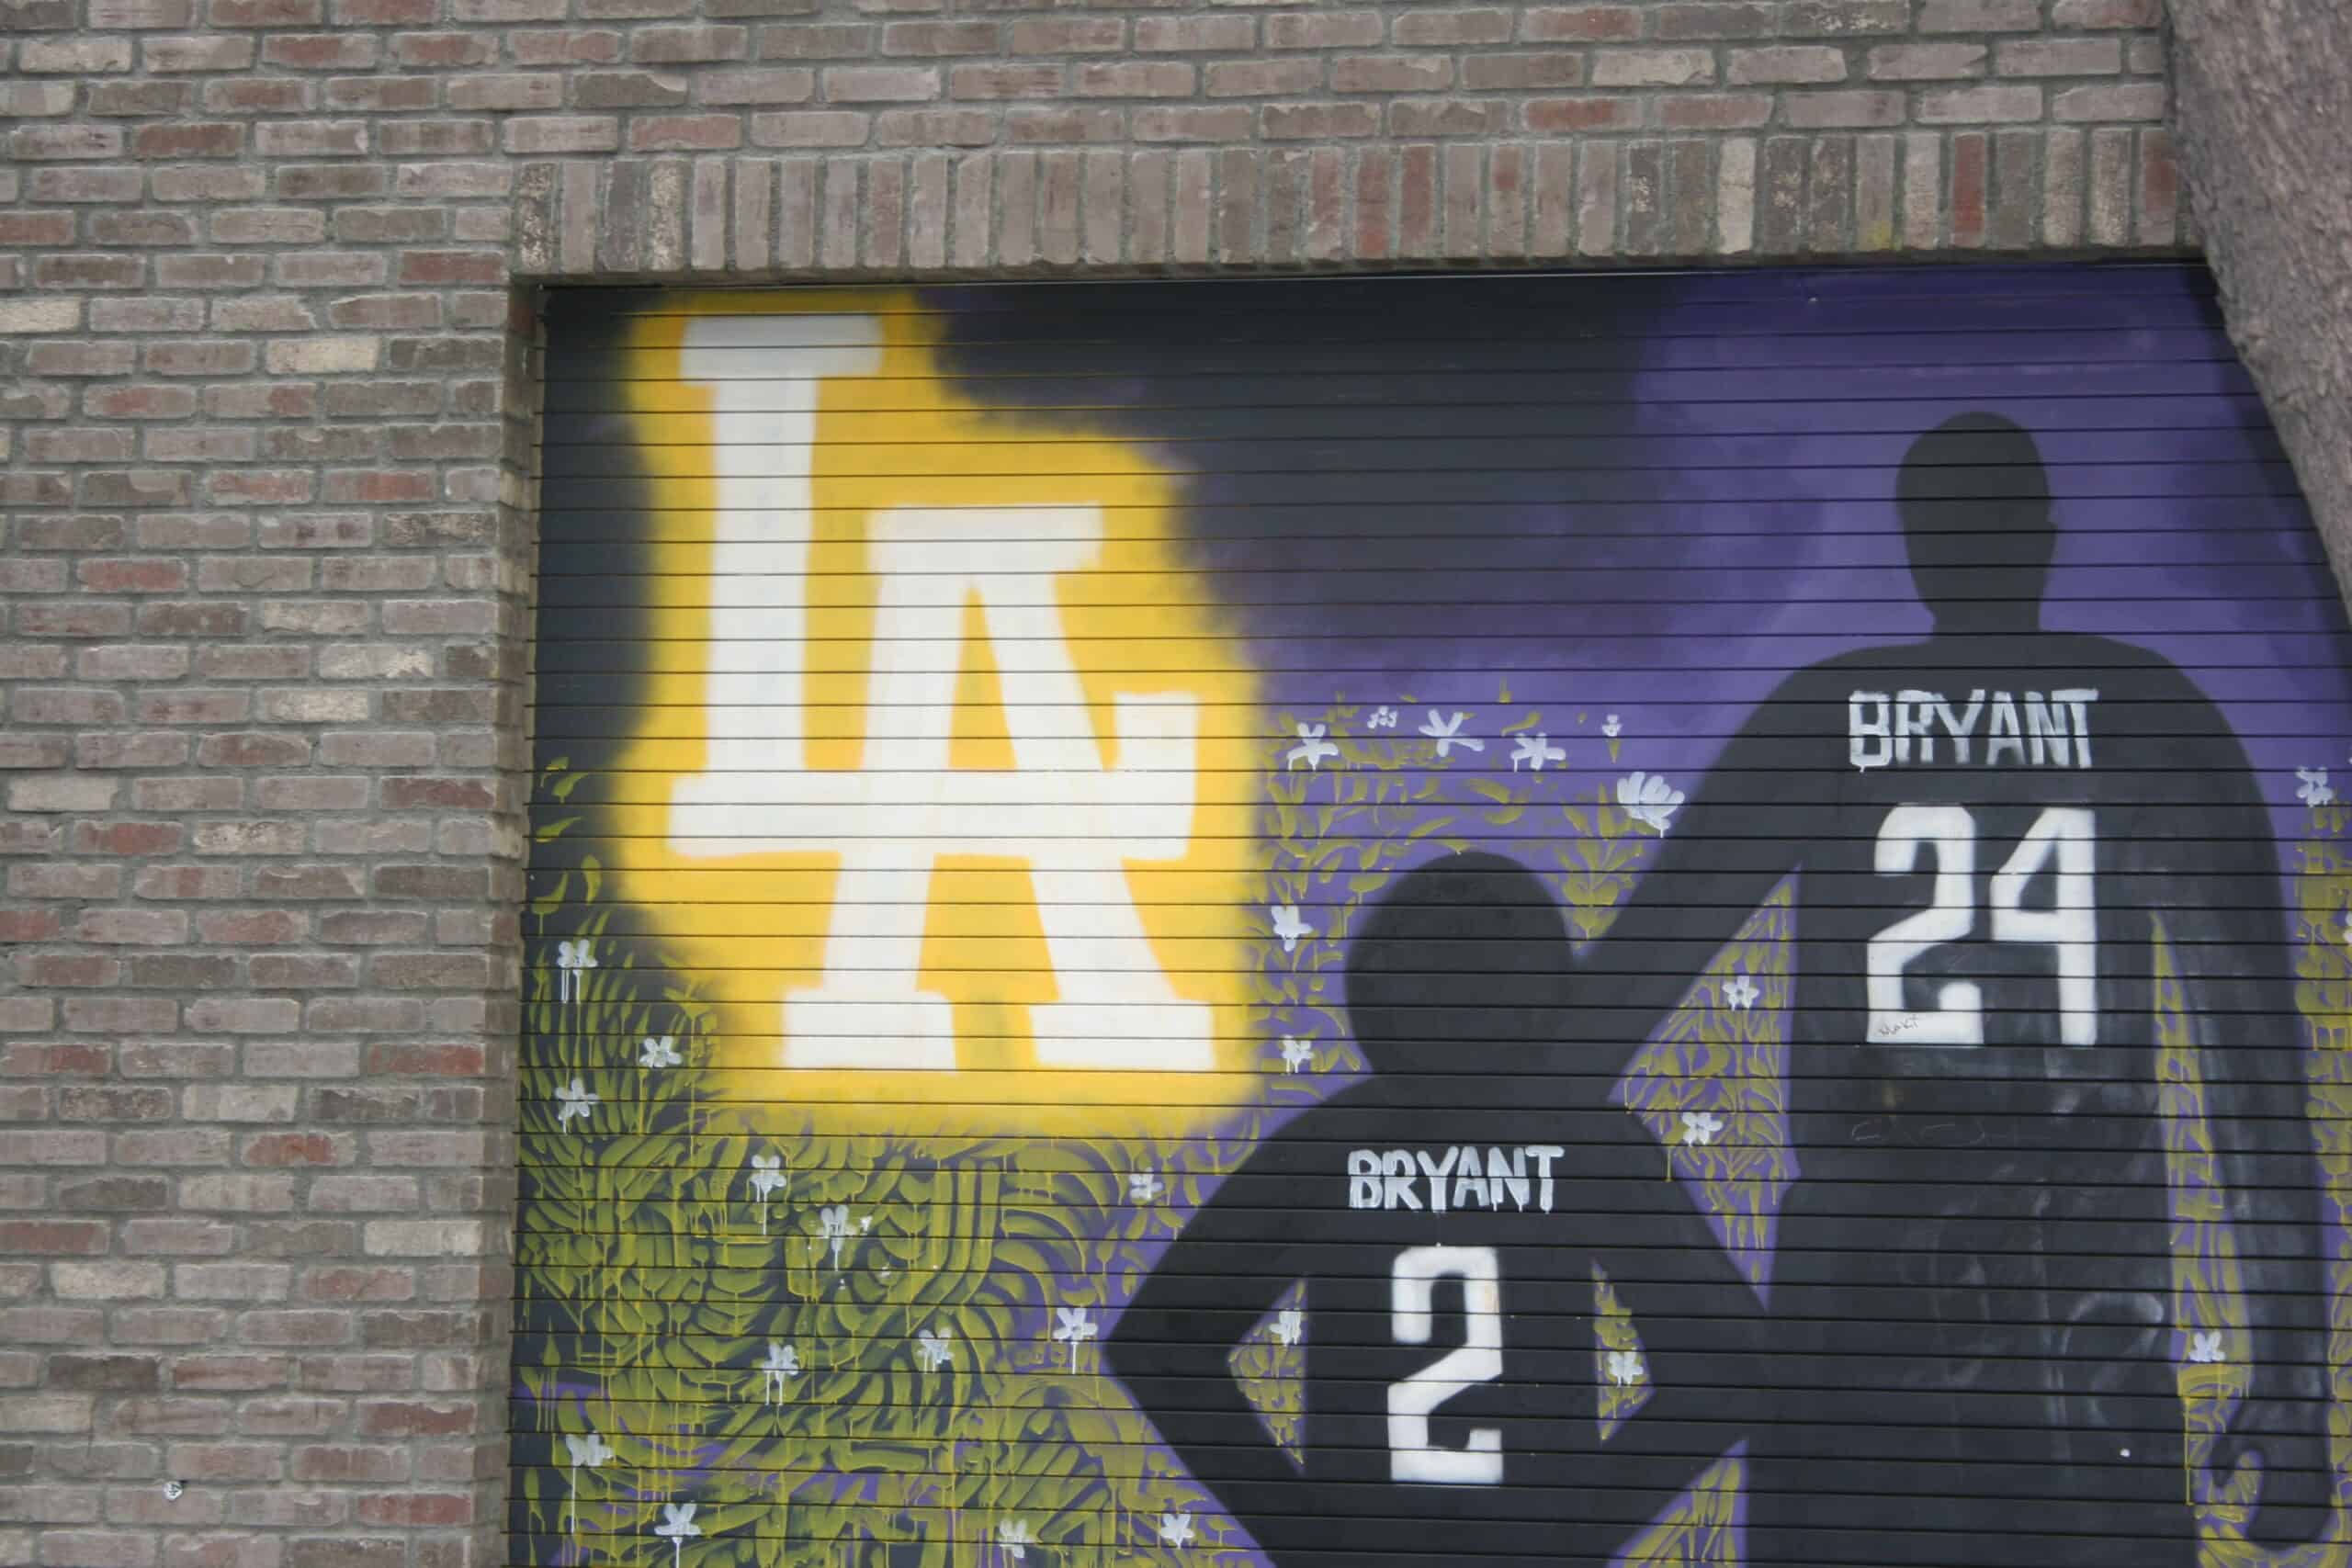 Hollywood Bus Tours - Lakers Mural